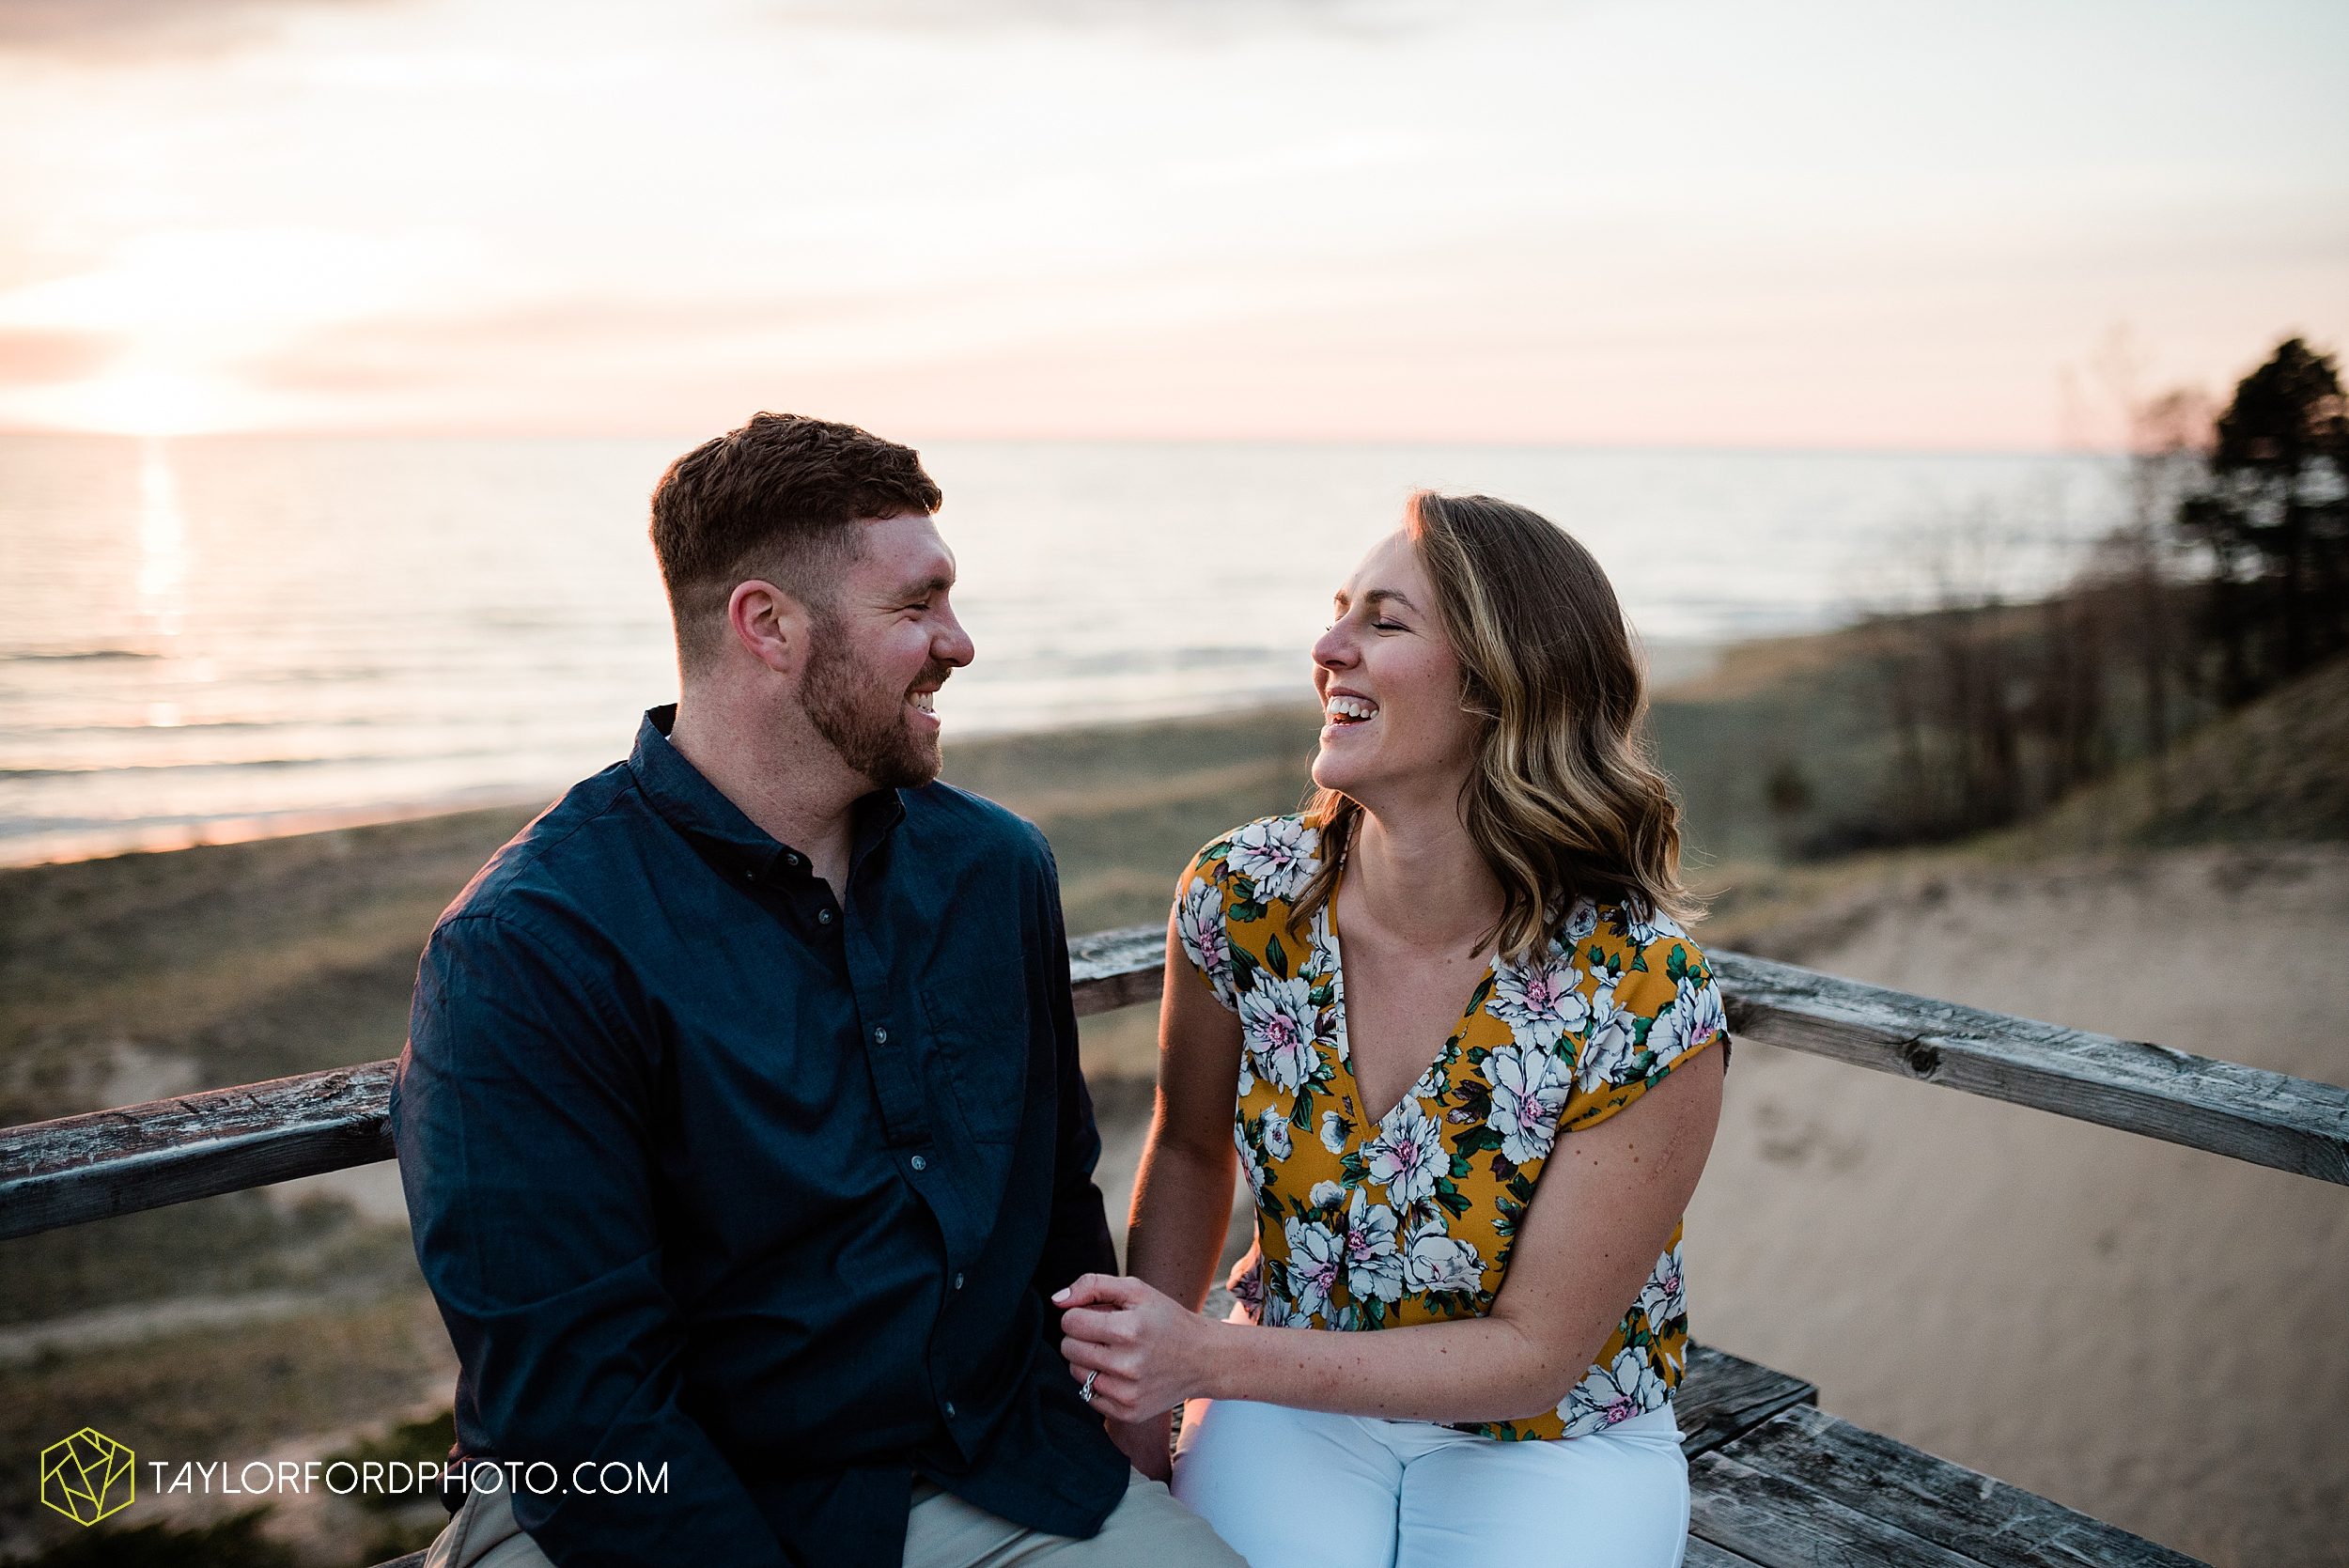 holland-michigan-tulip-time-downtown-hope-college-riverside-park-laketown-beach-lake-michigan-engagement-photographer-photography-taylor-ford-hirschy-photographer_2631.jpg